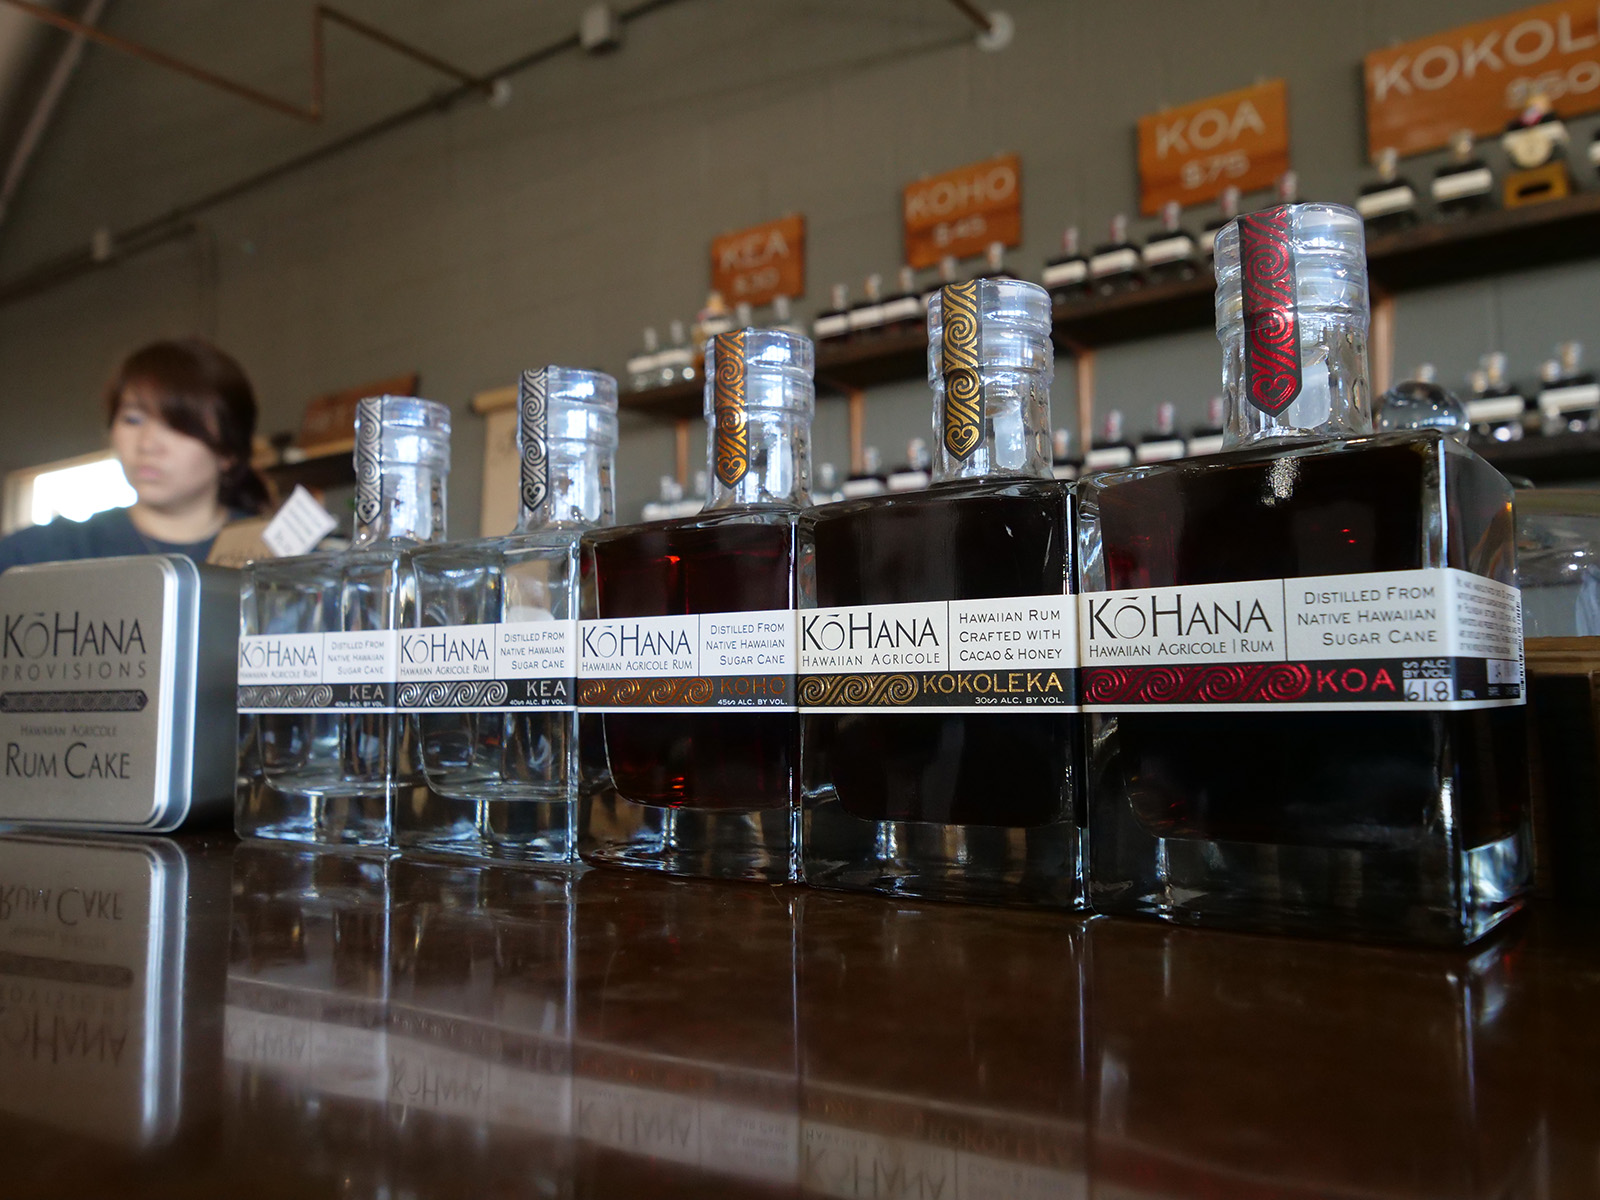 <p>A sampling of rum bottles line the bar of the Ko Hana distillery. Each rum is produced from a single variety of Hawaiian sugar cane.</p>